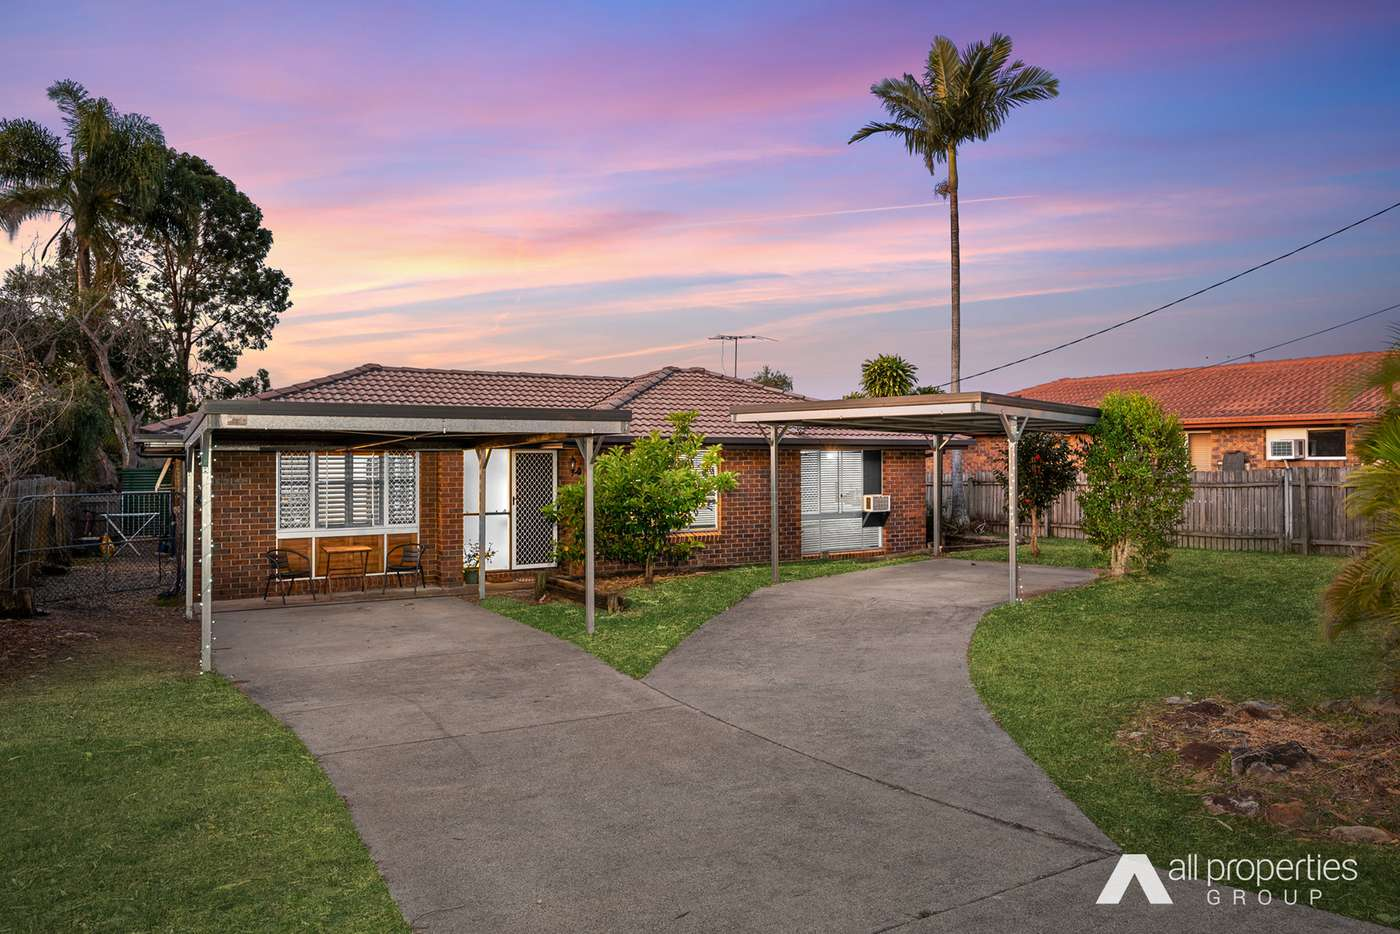 Main view of Homely house listing, 23 Sweetgum Street, Hillcrest QLD 4118